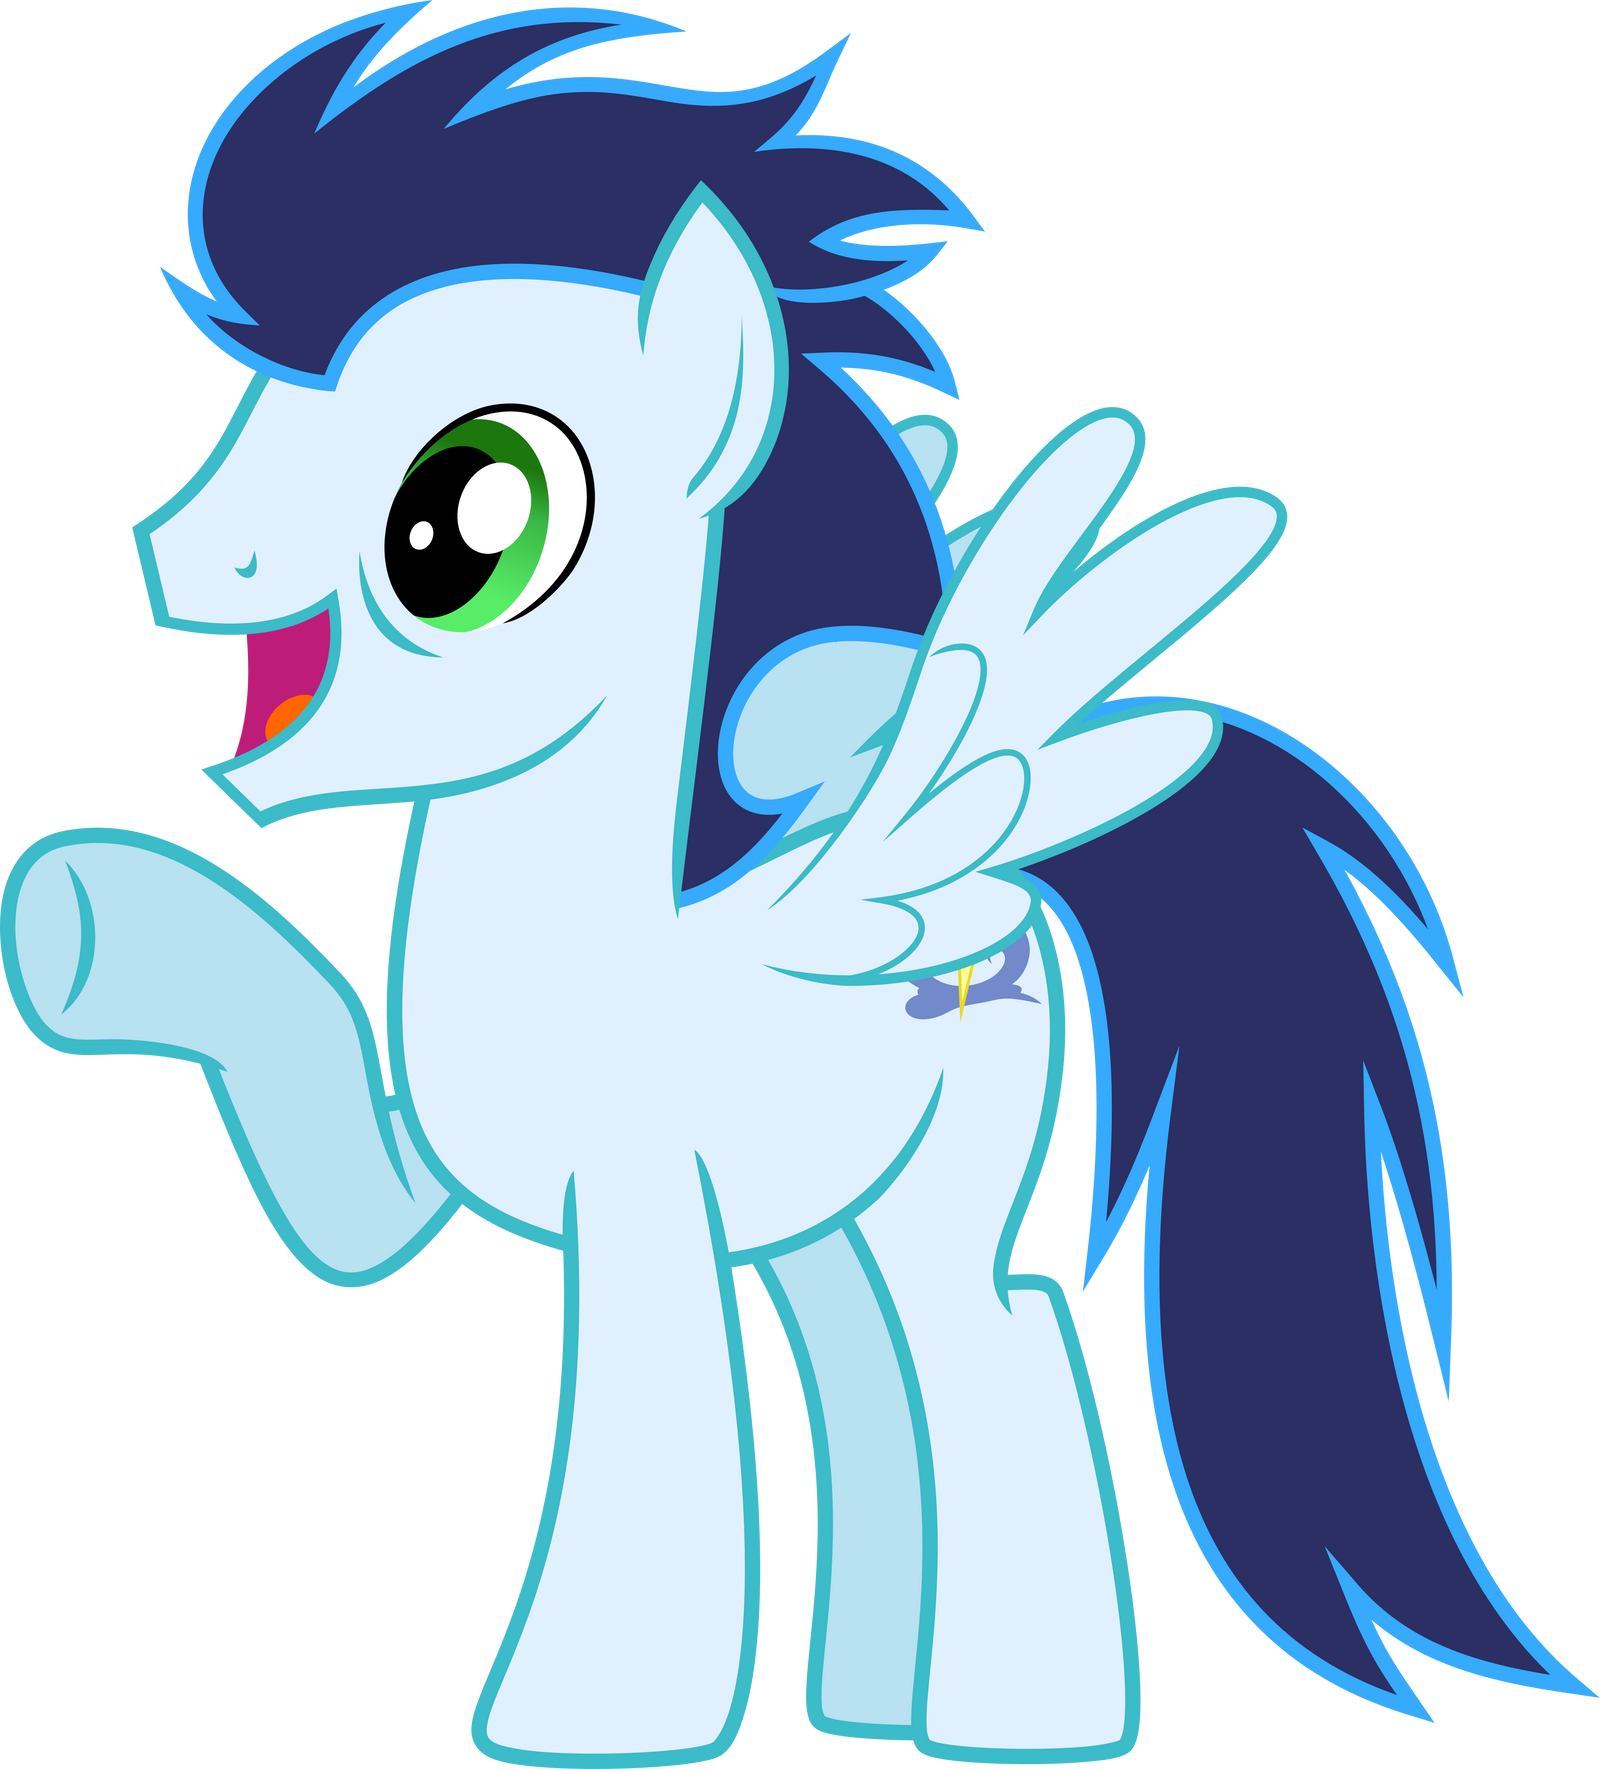 Ecstatic Suitless Soarin' by ChainChomp2 on DeviantArt